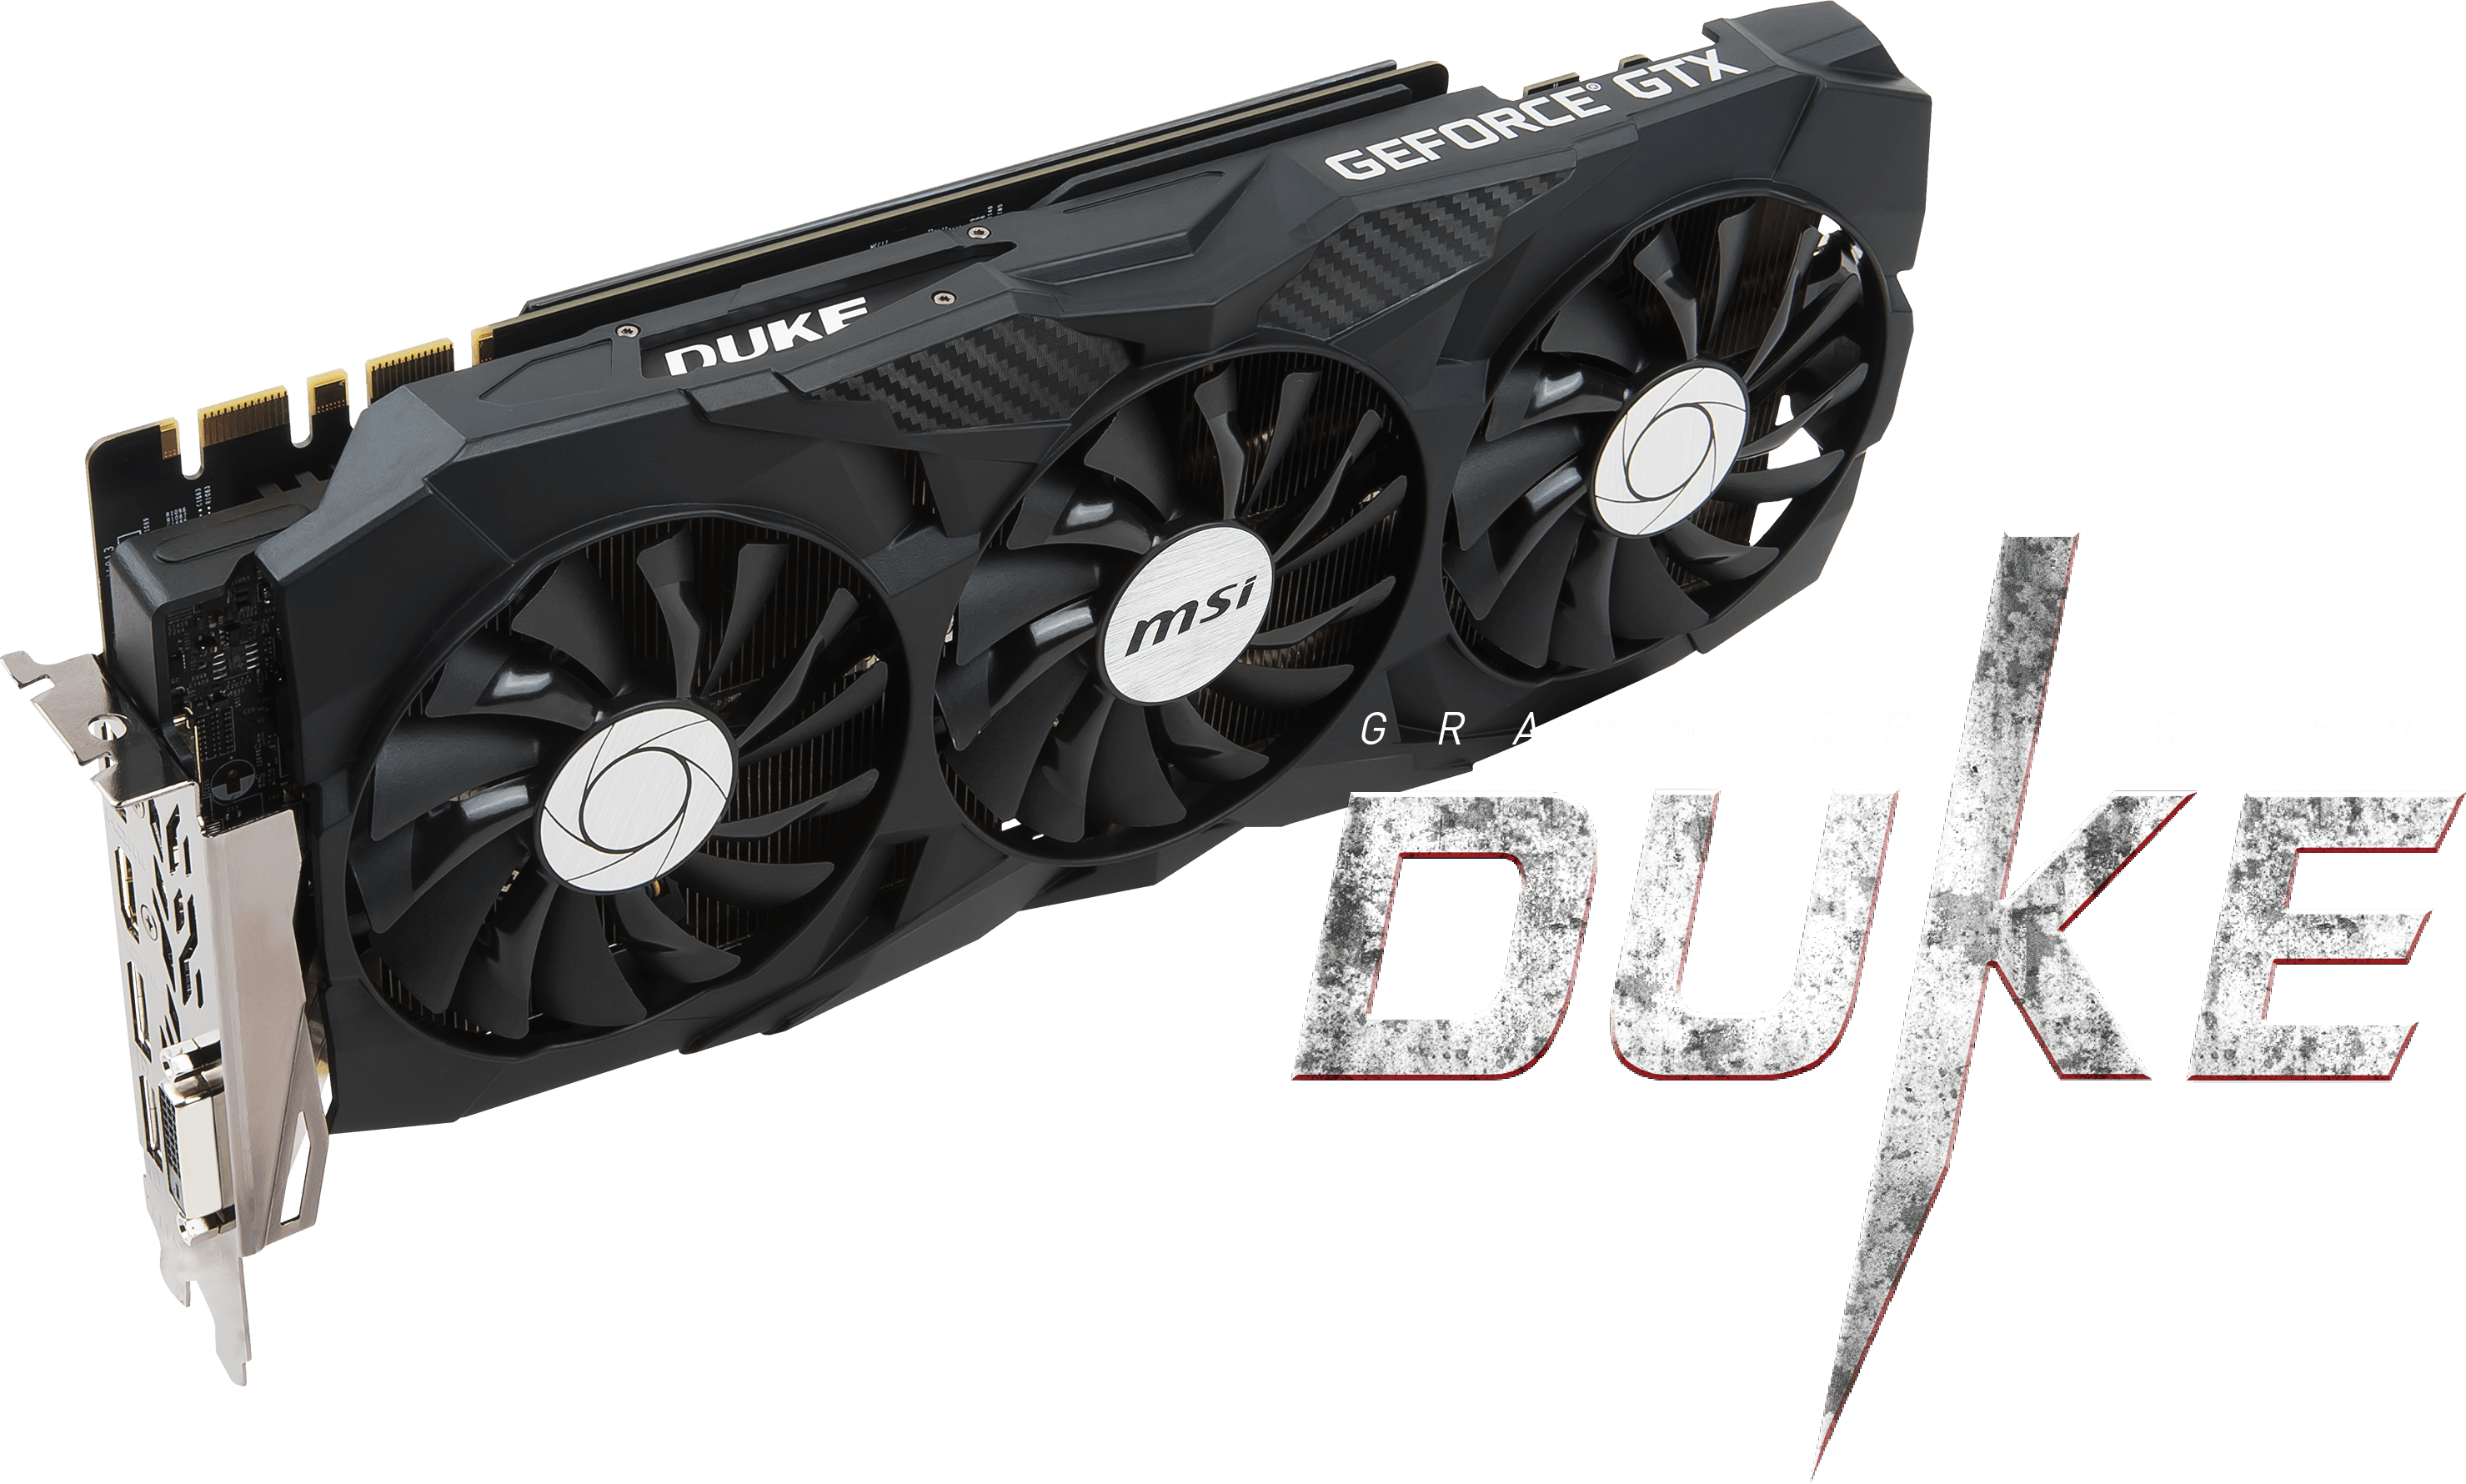 GeForce GTX 1080 Ti DUKE 11G OC | Graphics card - The world